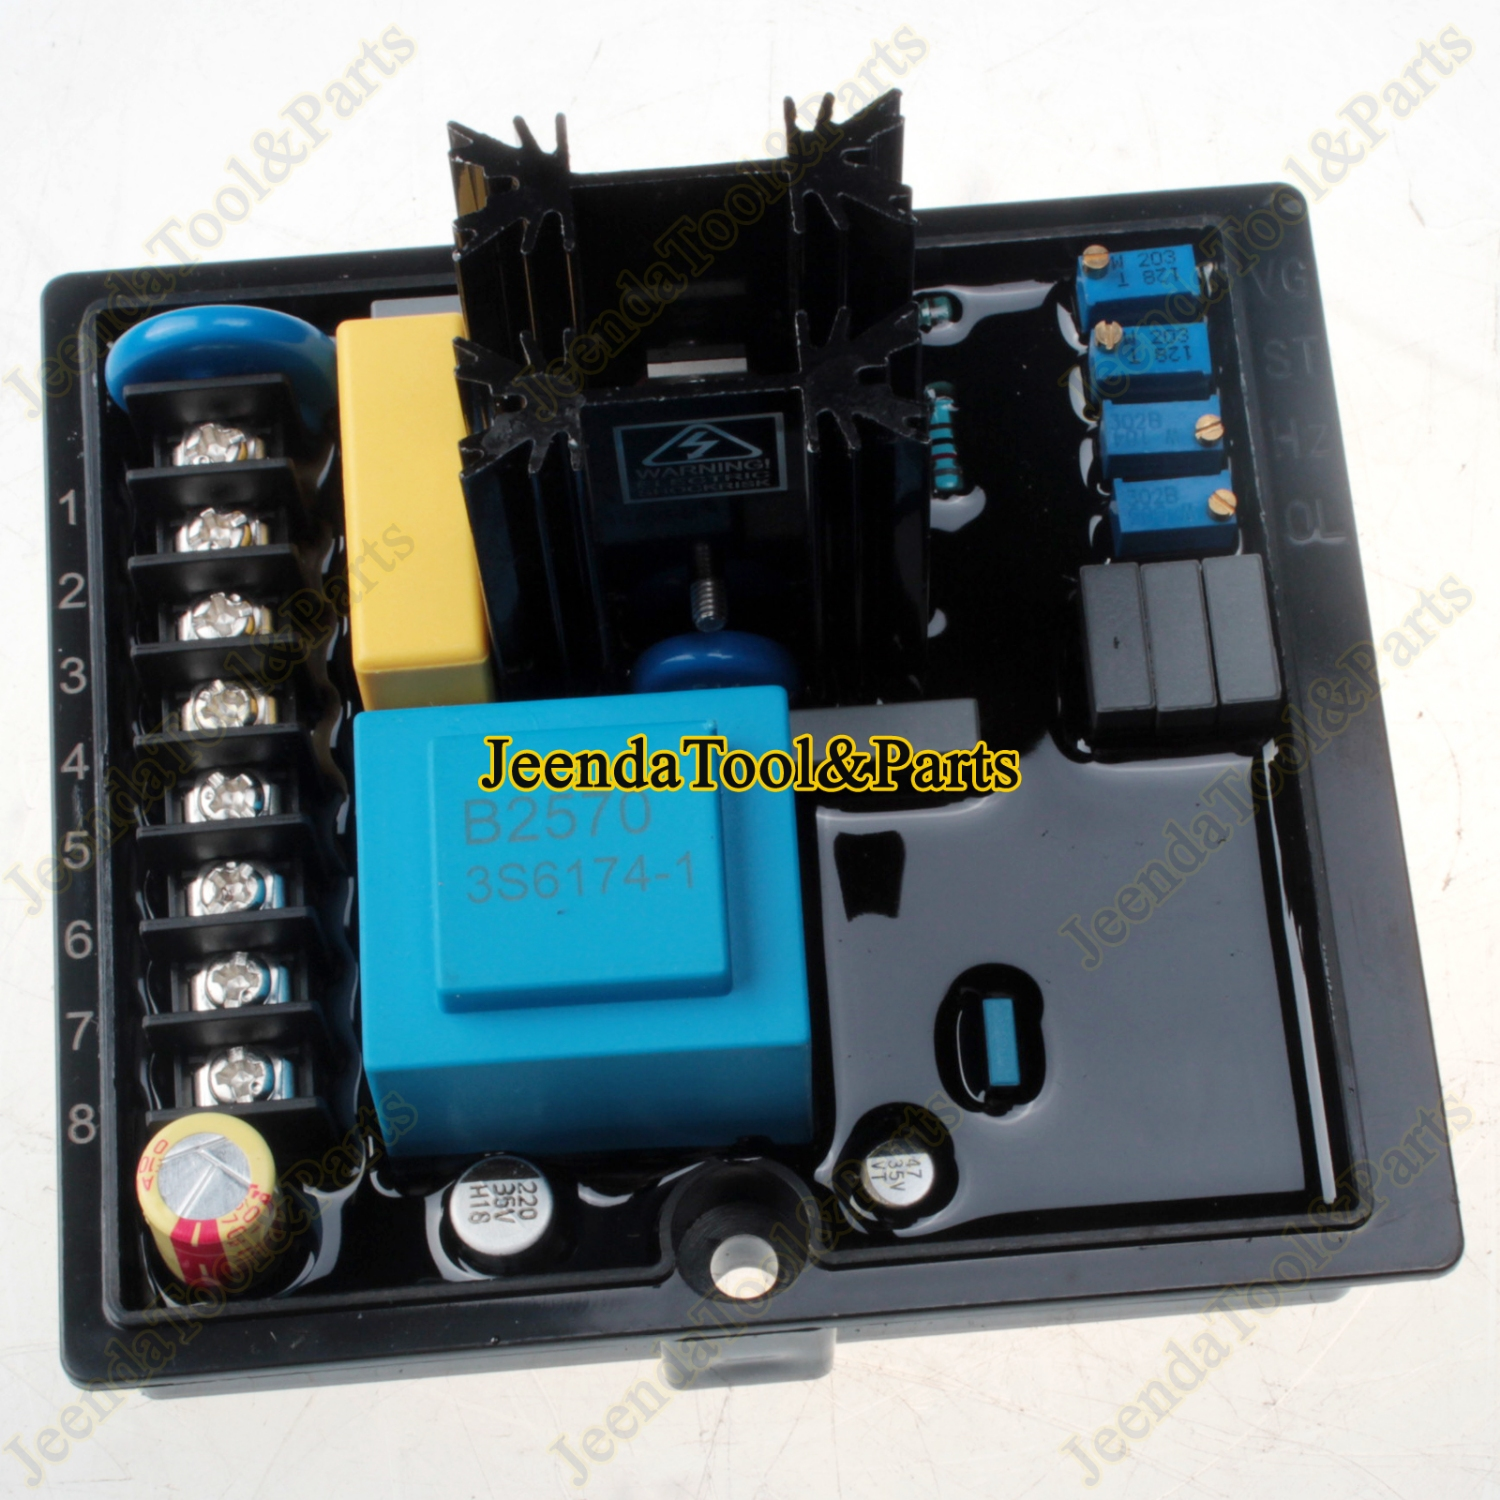 ec9bd790df88a6a2 avr hvr 11 electronic automatic voltage regulator for linz stamford avr sx460 wiring diagram at virtualis.co